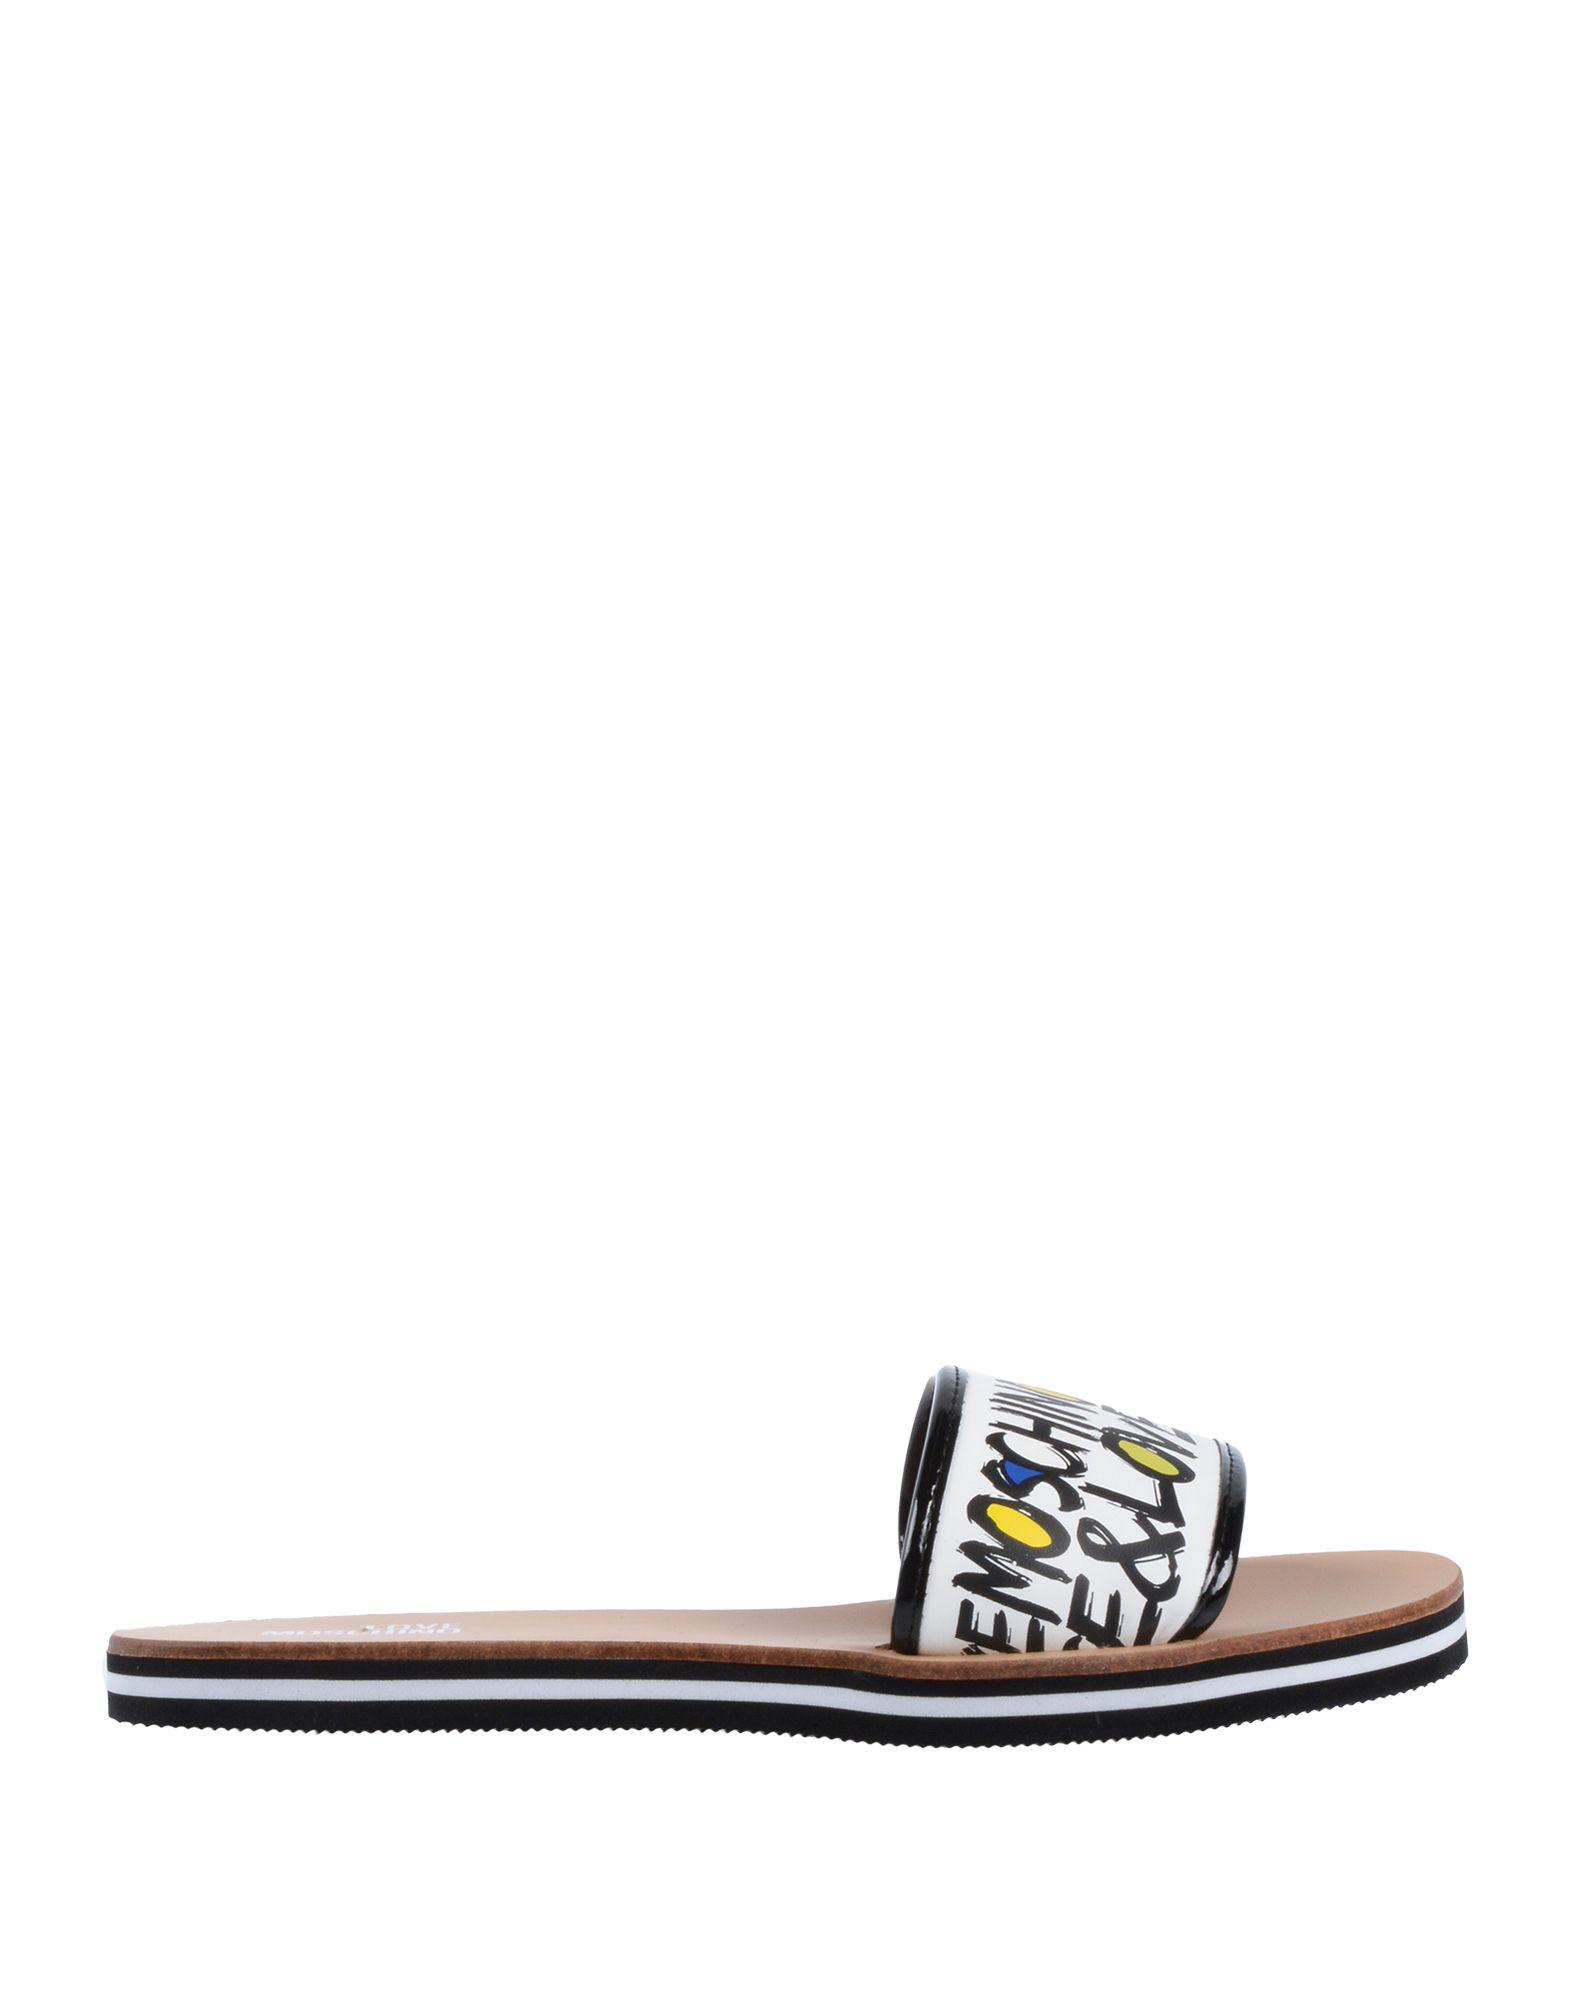 9d07d786d85e Lyst - Love Moschino Sandals in White